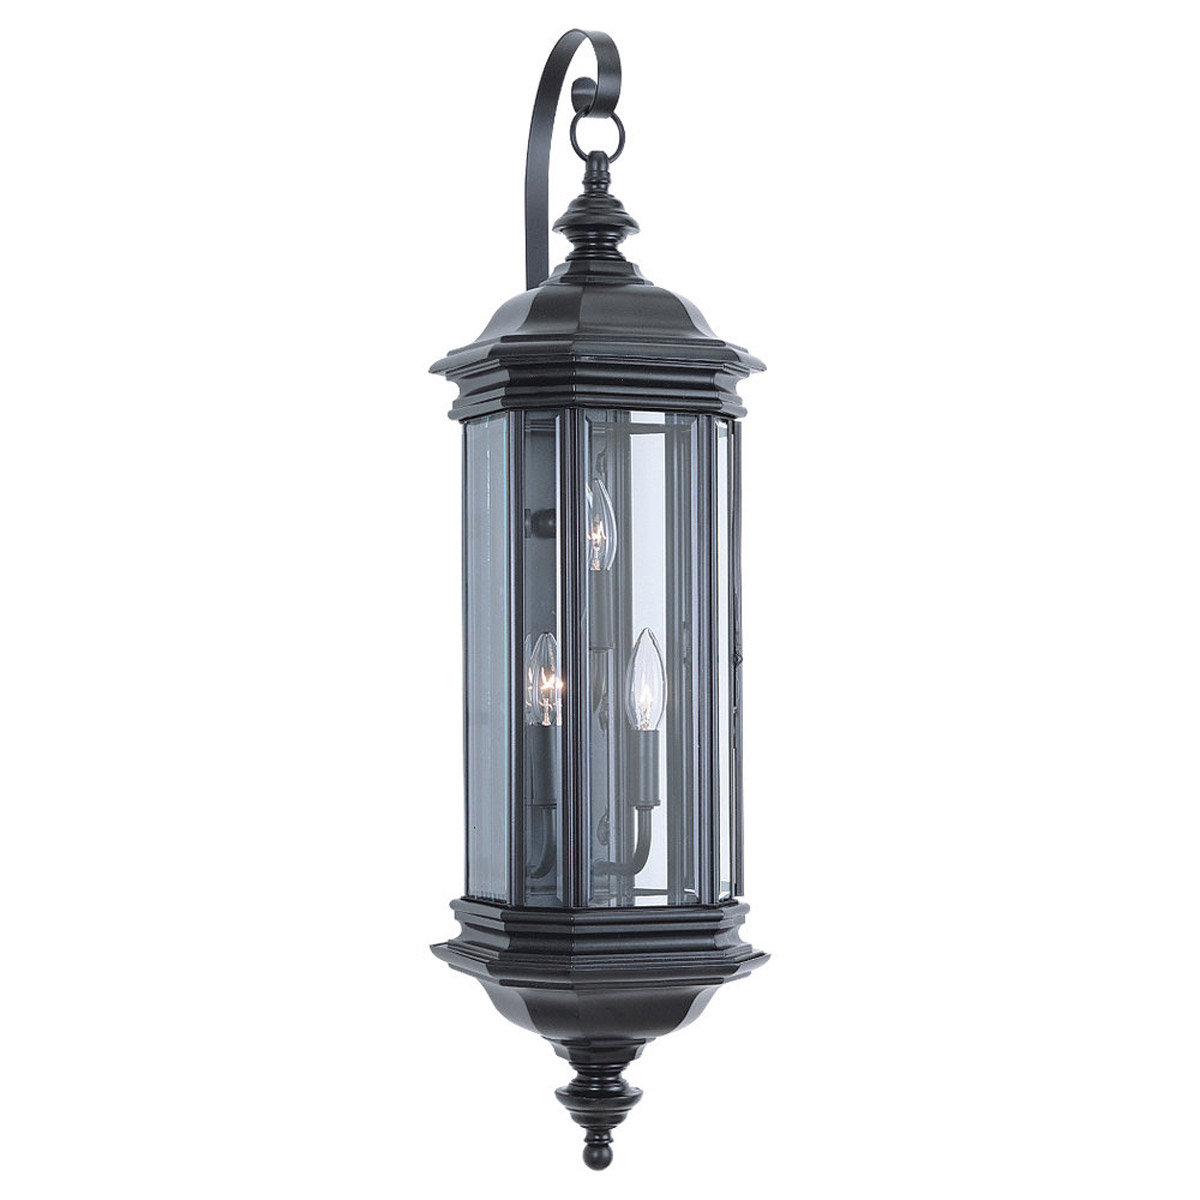 Sea Gull Lighting Hill Gate 3 Light Outdoor Wall Lantern in Black 8842-12